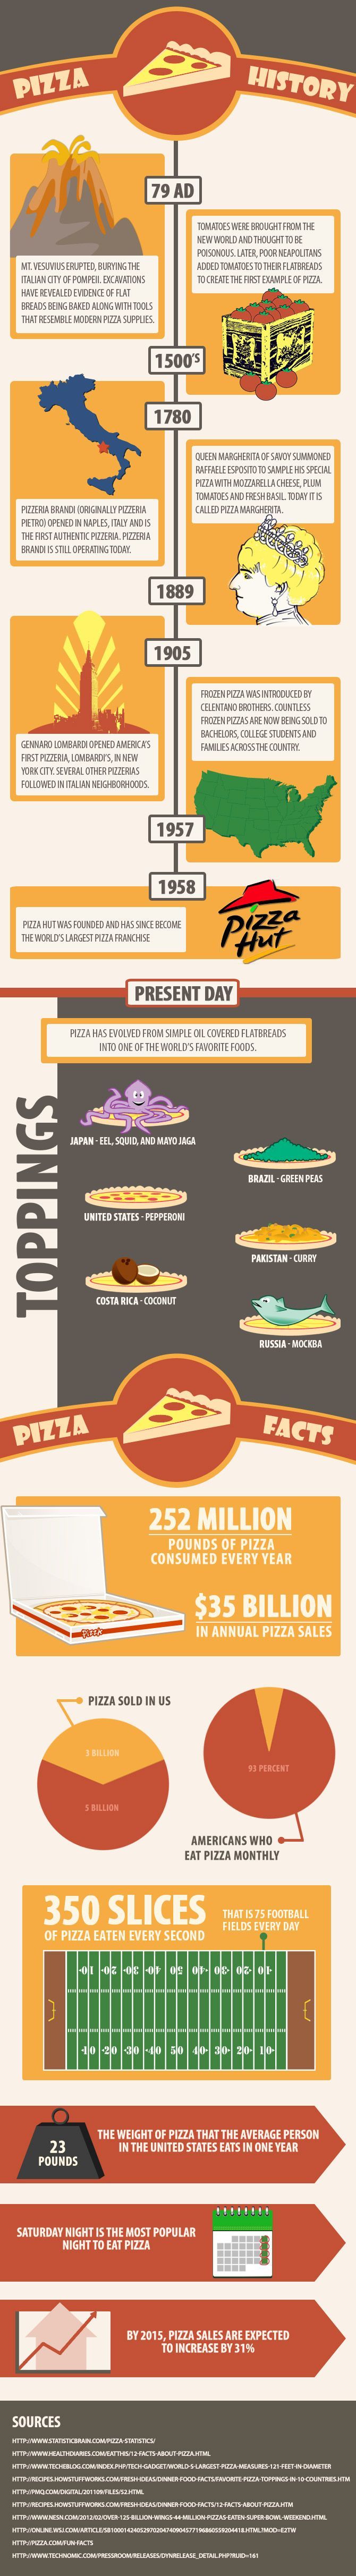 Timeline Infographic: The History of Pizza